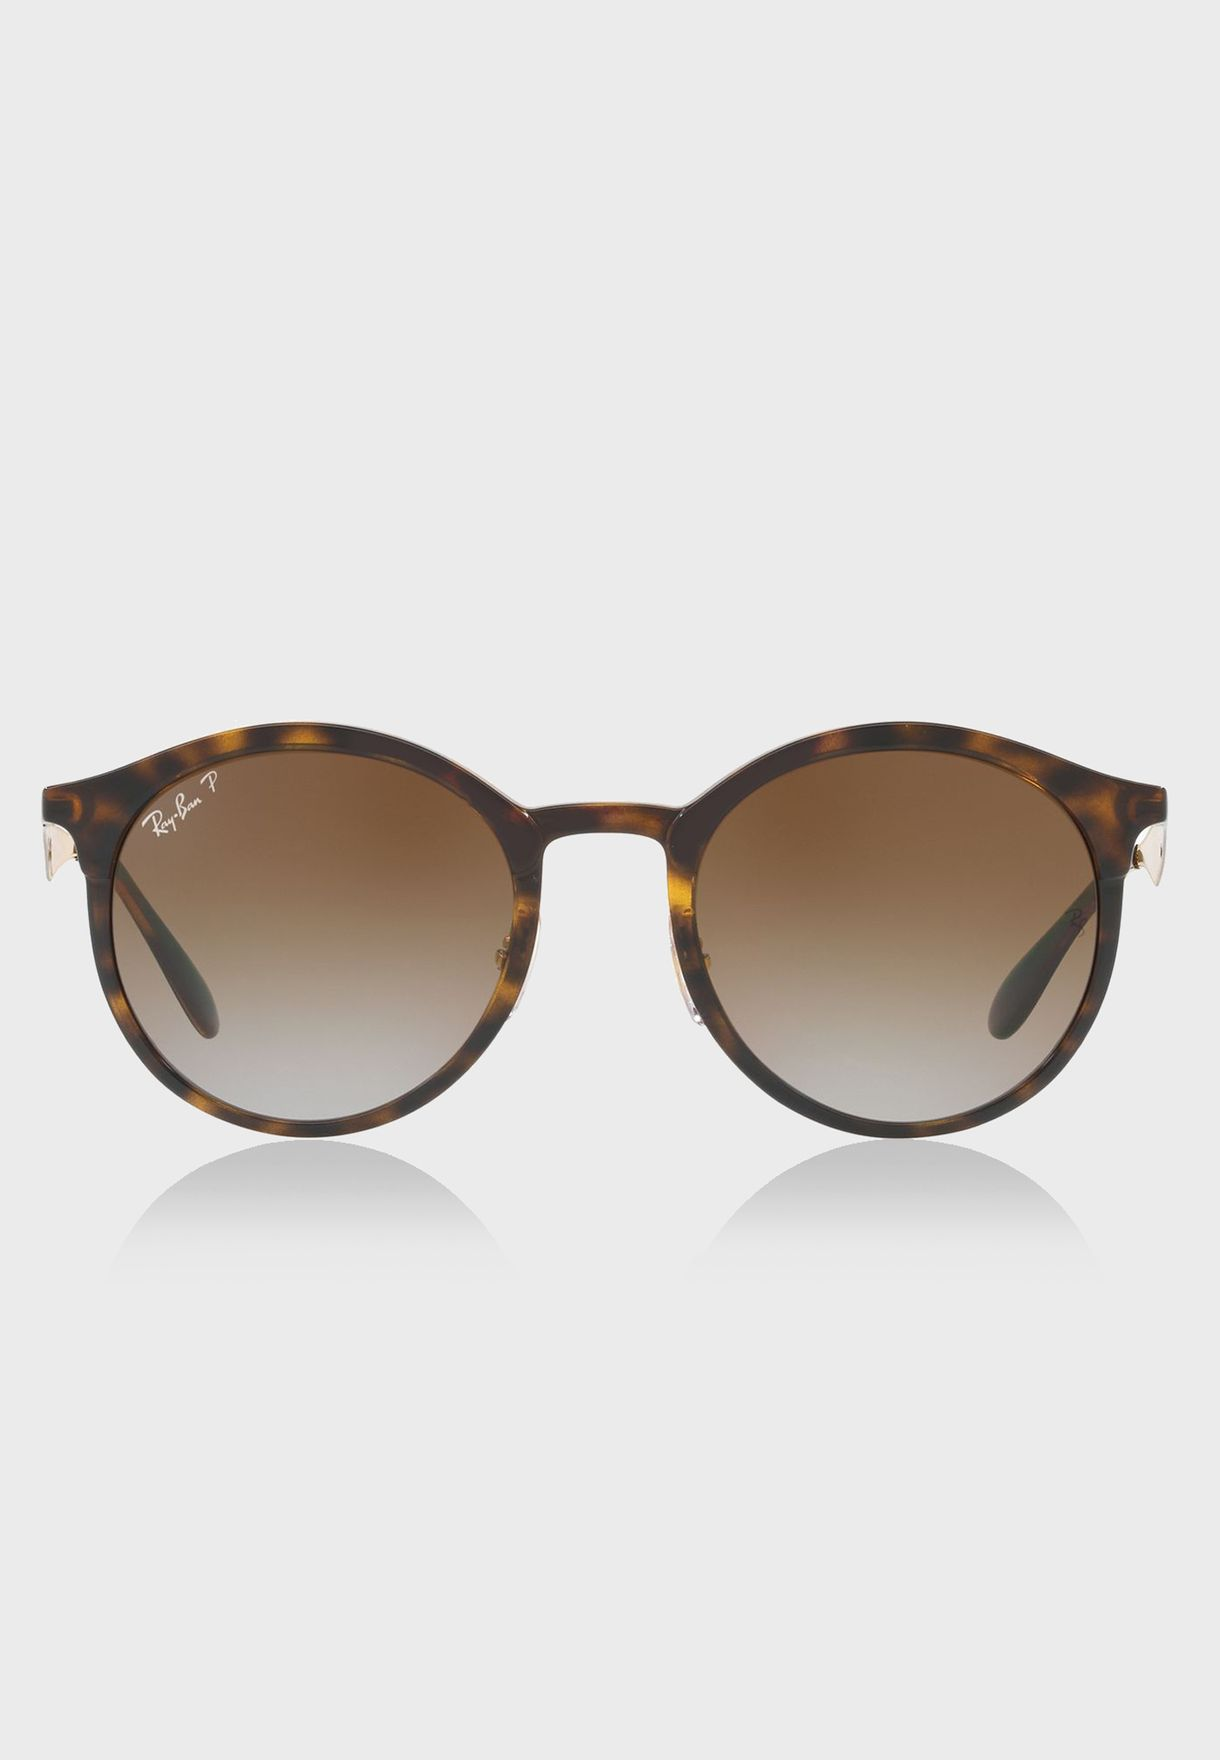 0a3ab773ceb Shop Ray-Ban browns RB4277 Emma Tortoise 8053672774382 for Men in ...